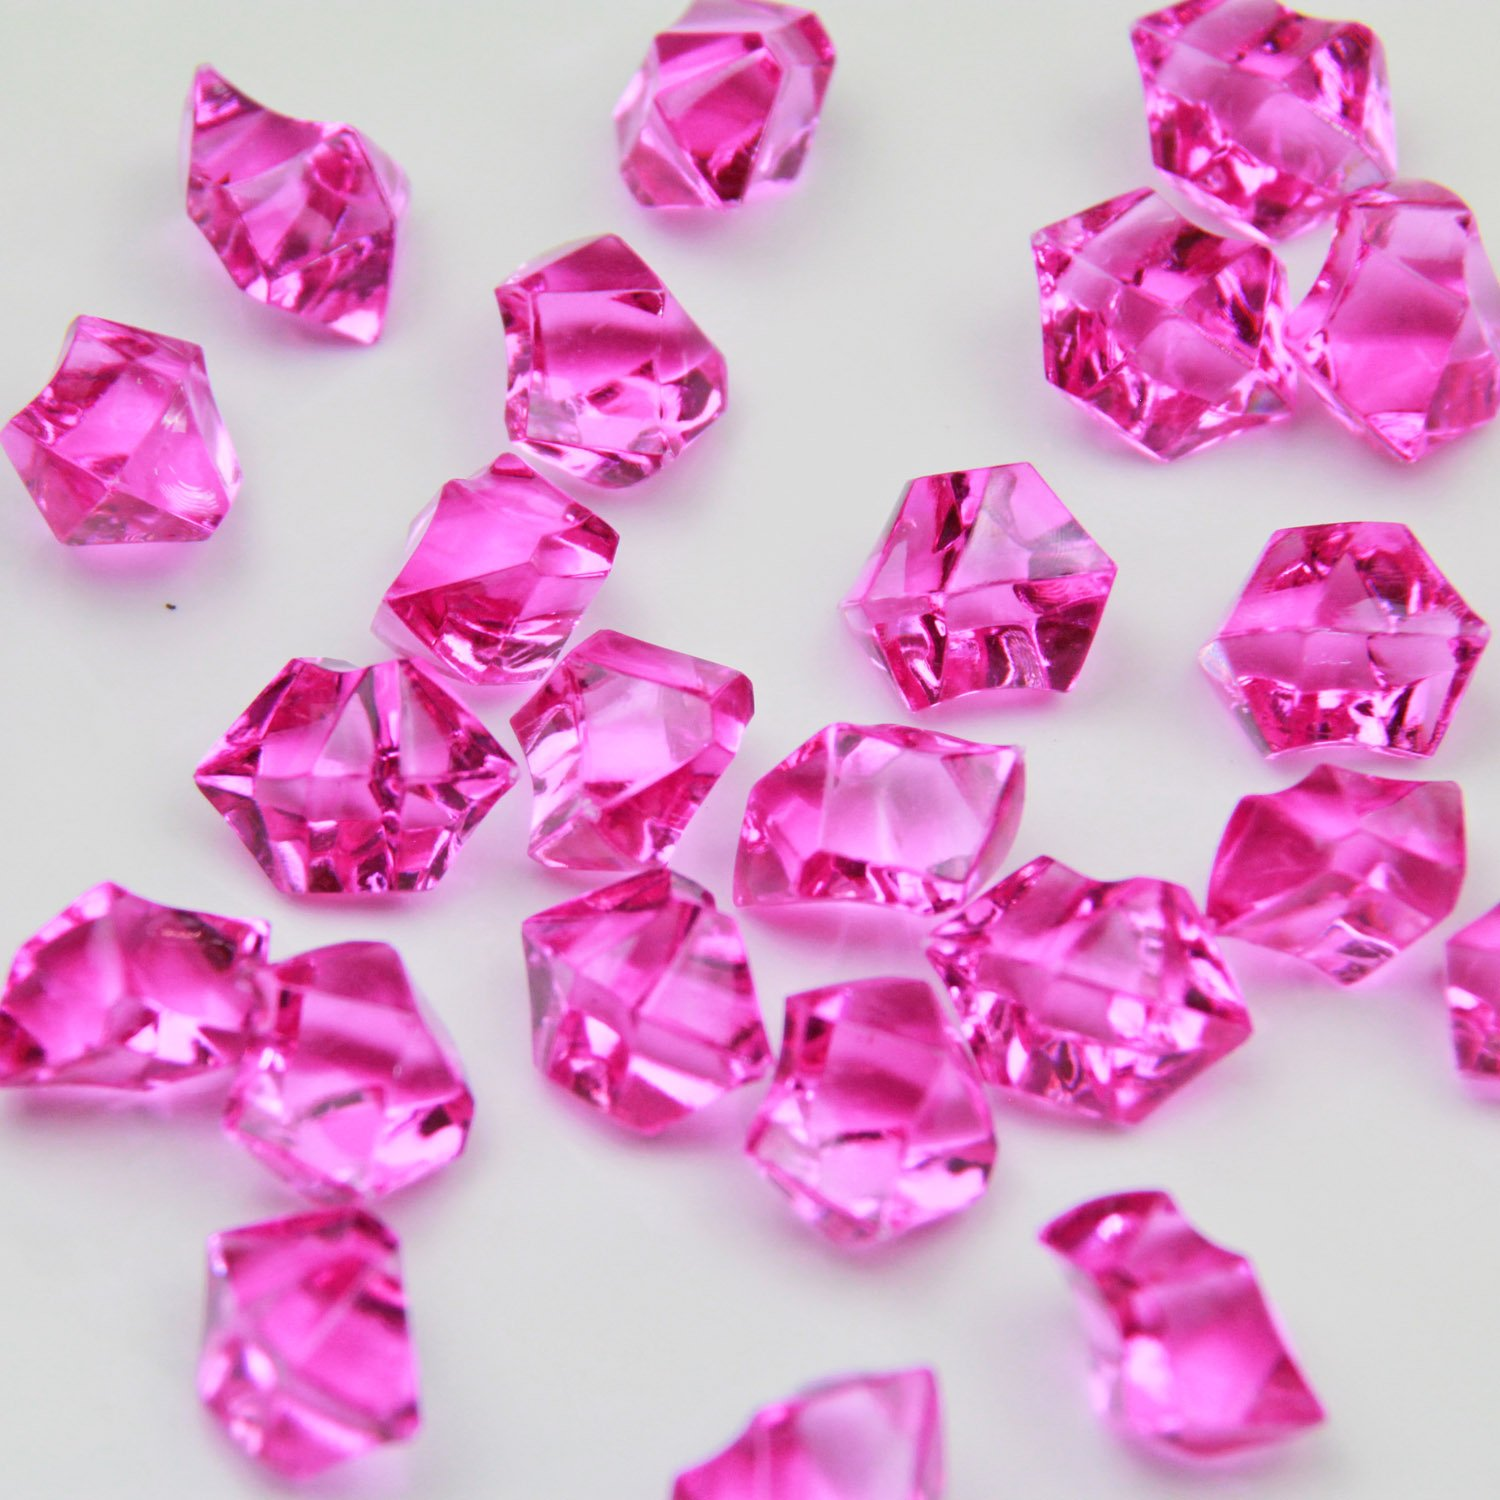 Make Wedding Days more Magic with the Acrylic Gem Confetti PePeng Pack of 2000 Clear Decorative Wedding Table Scatter Crystals for 2-4 Tables 8mm, Hot Pink